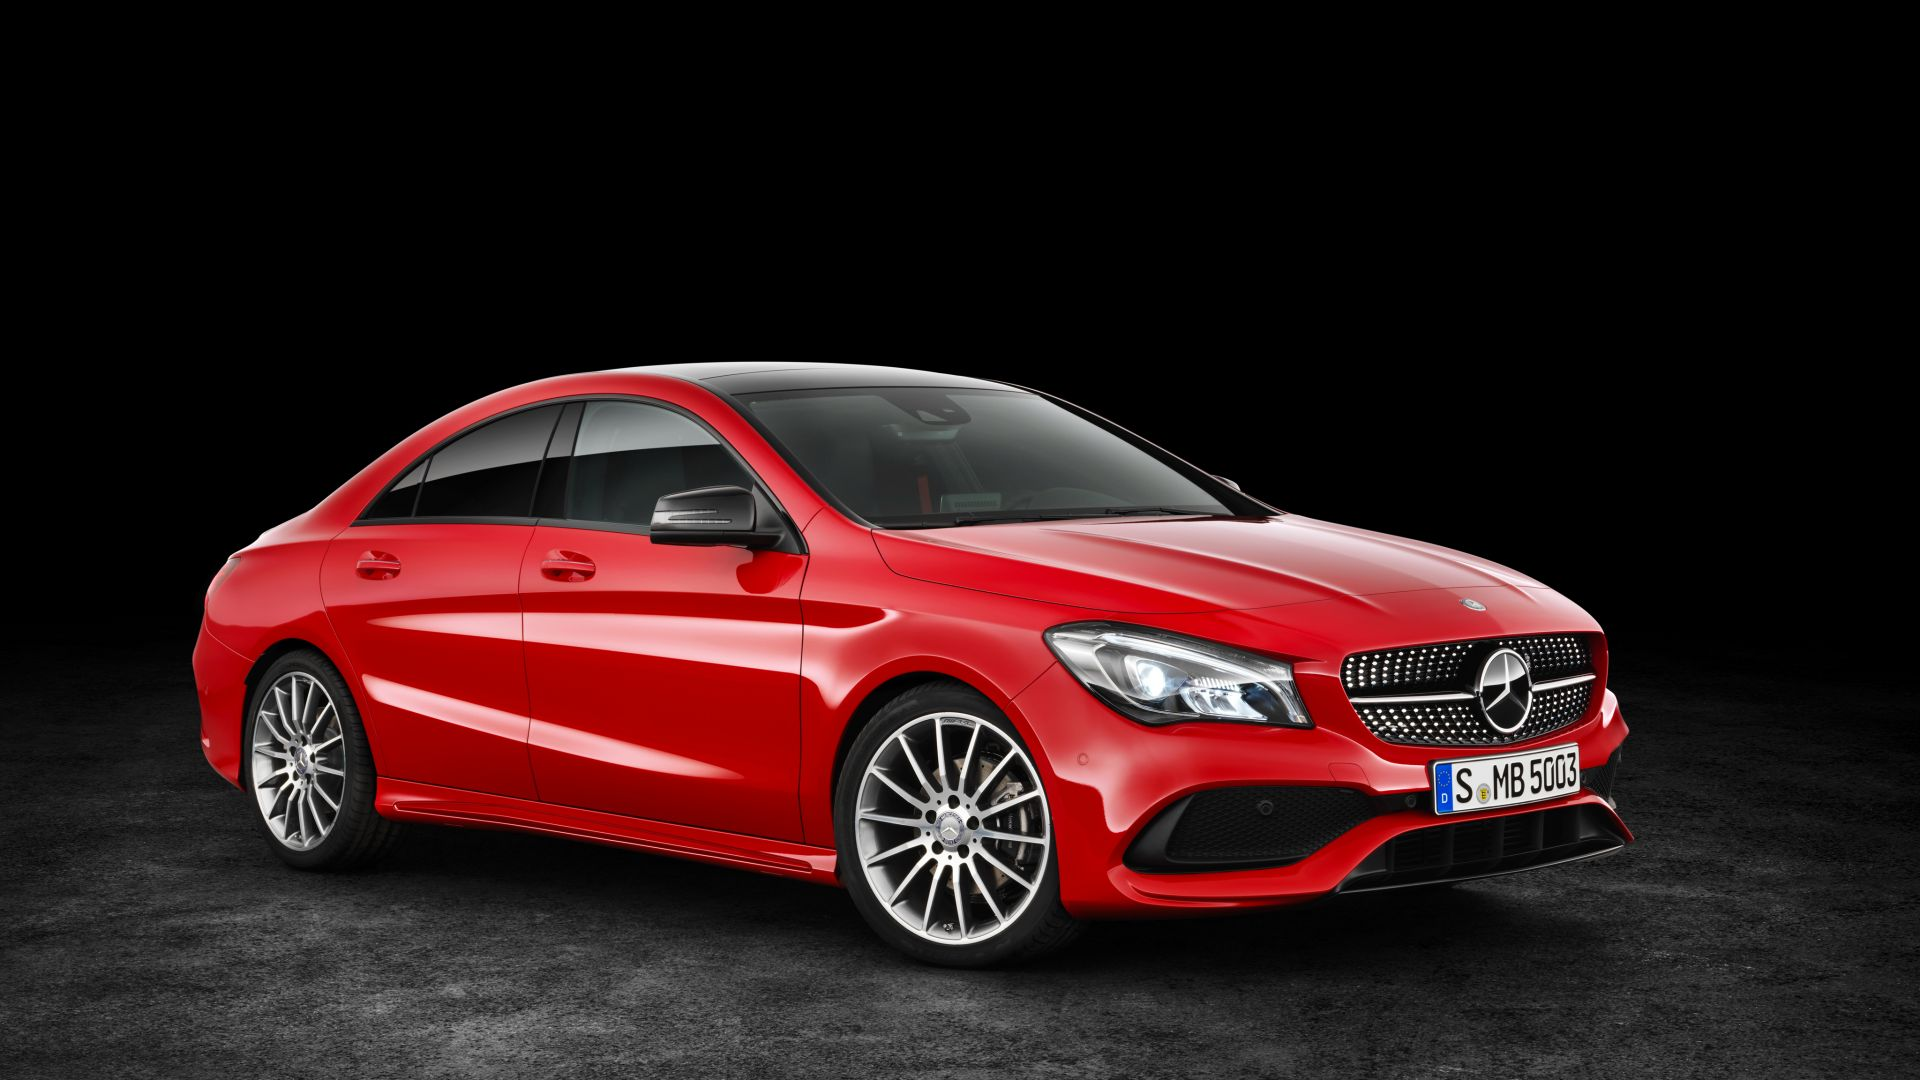 Mercedes-Benz CLA 200 d, 4MATIC AMG Line, NYIAS 2016, red (horizontal)